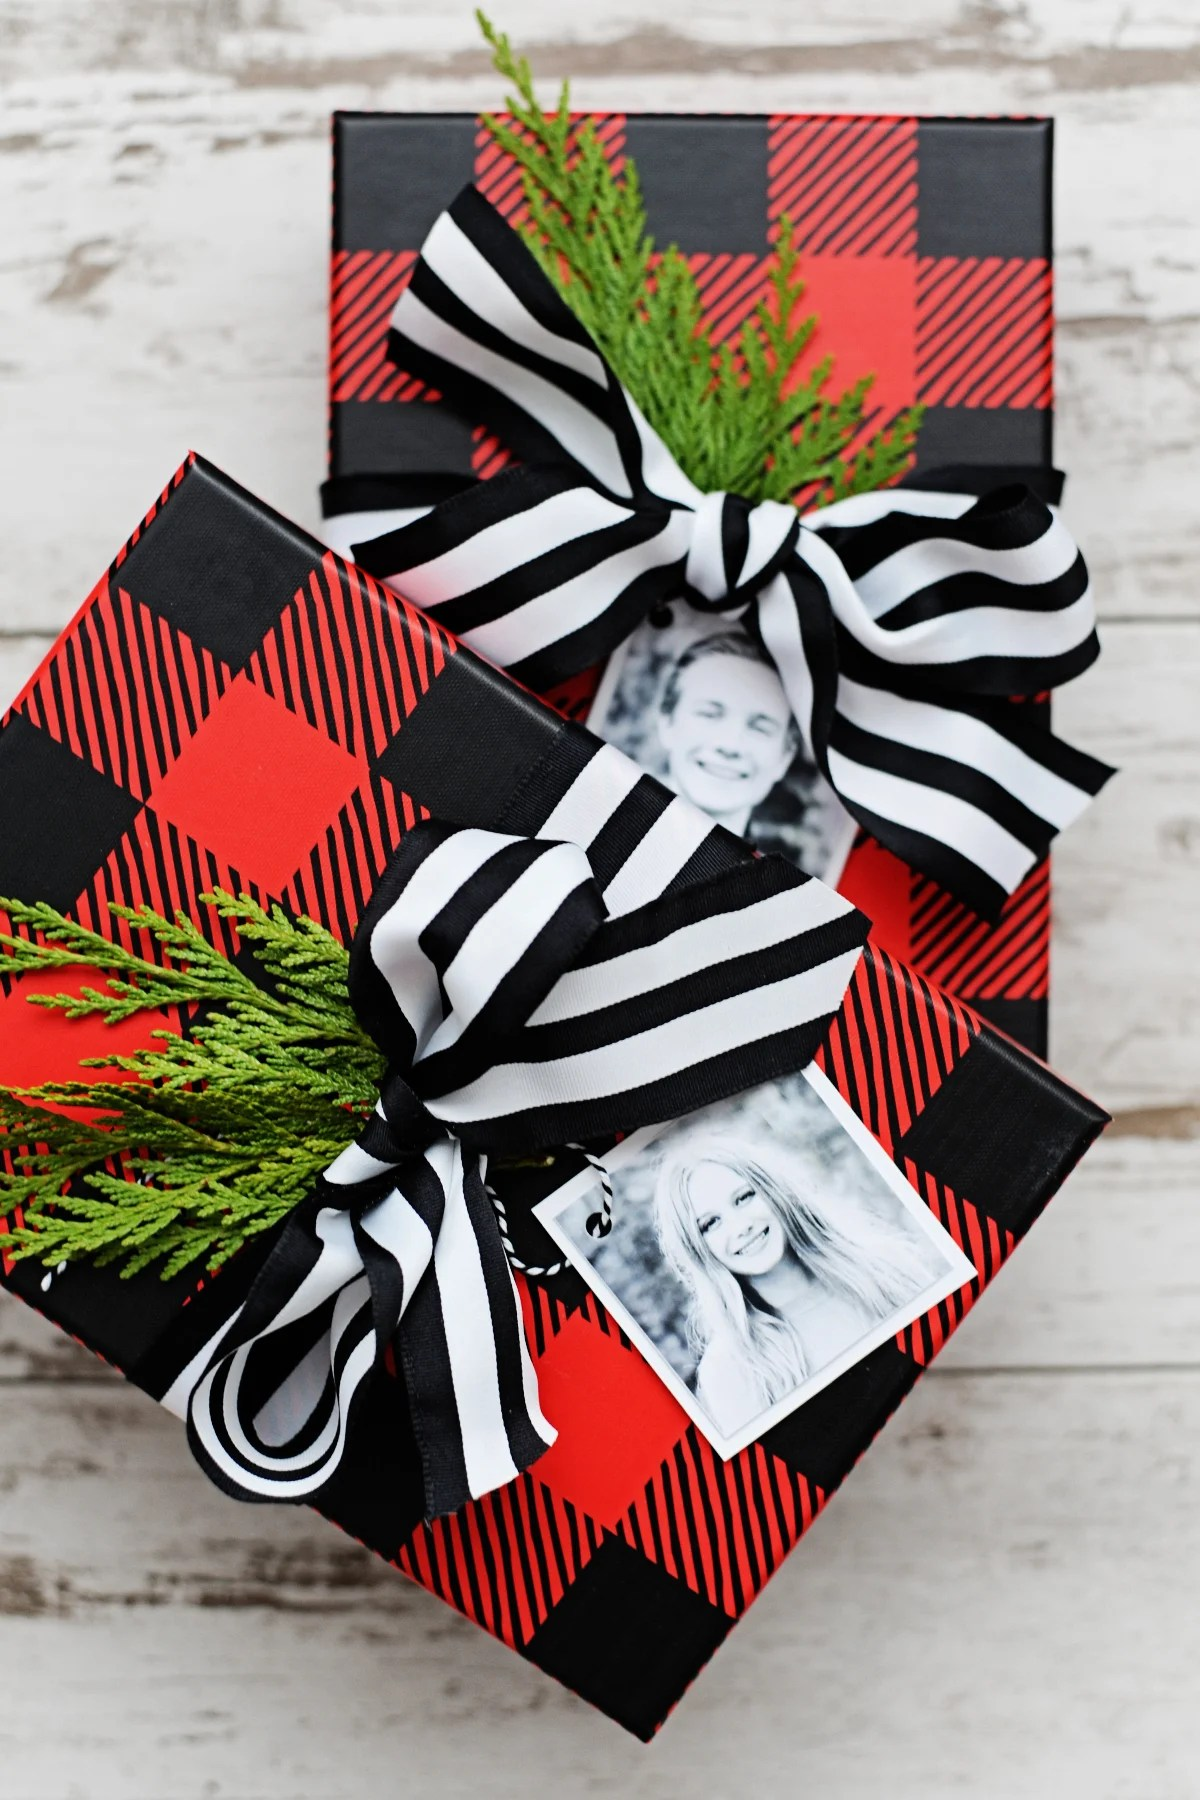 Creative Gift Wrapping Ideas for Kids (and everyone else)